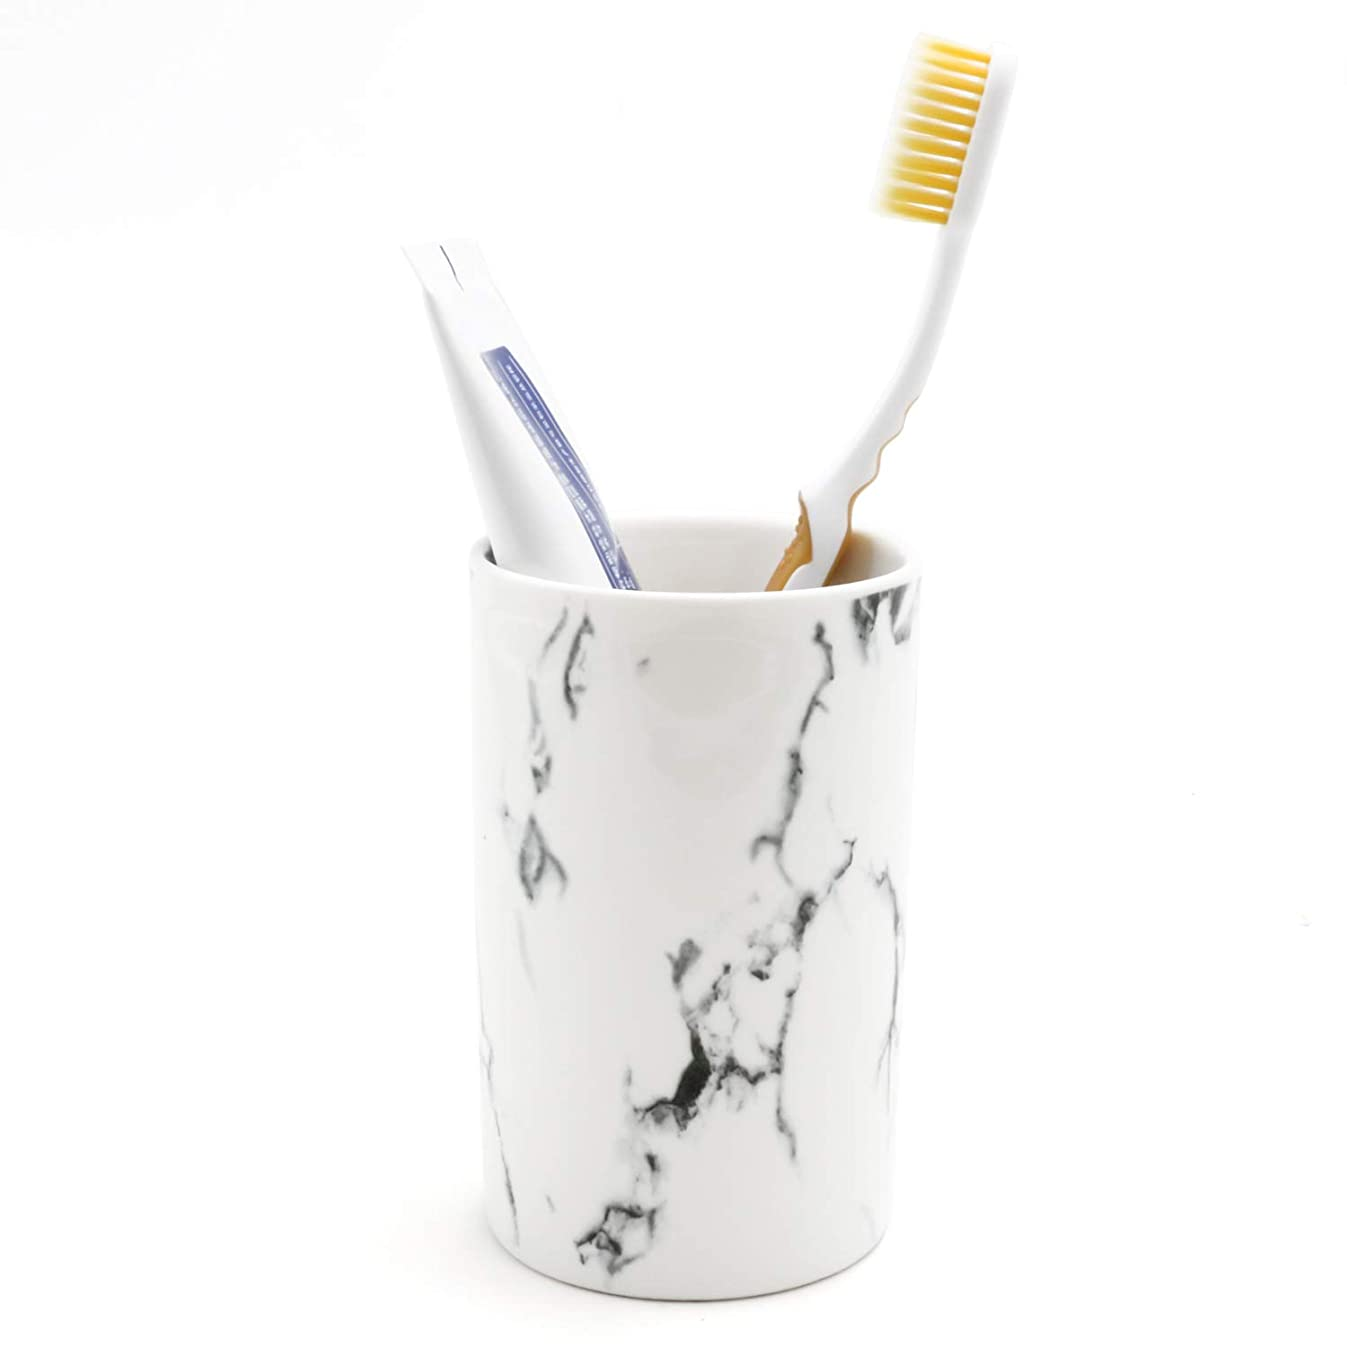 LUANT Ceramic Bathroom Tumbler Cup for Mouthwash/Rinsing, Toothbrush and Toothpaste Holder Stand